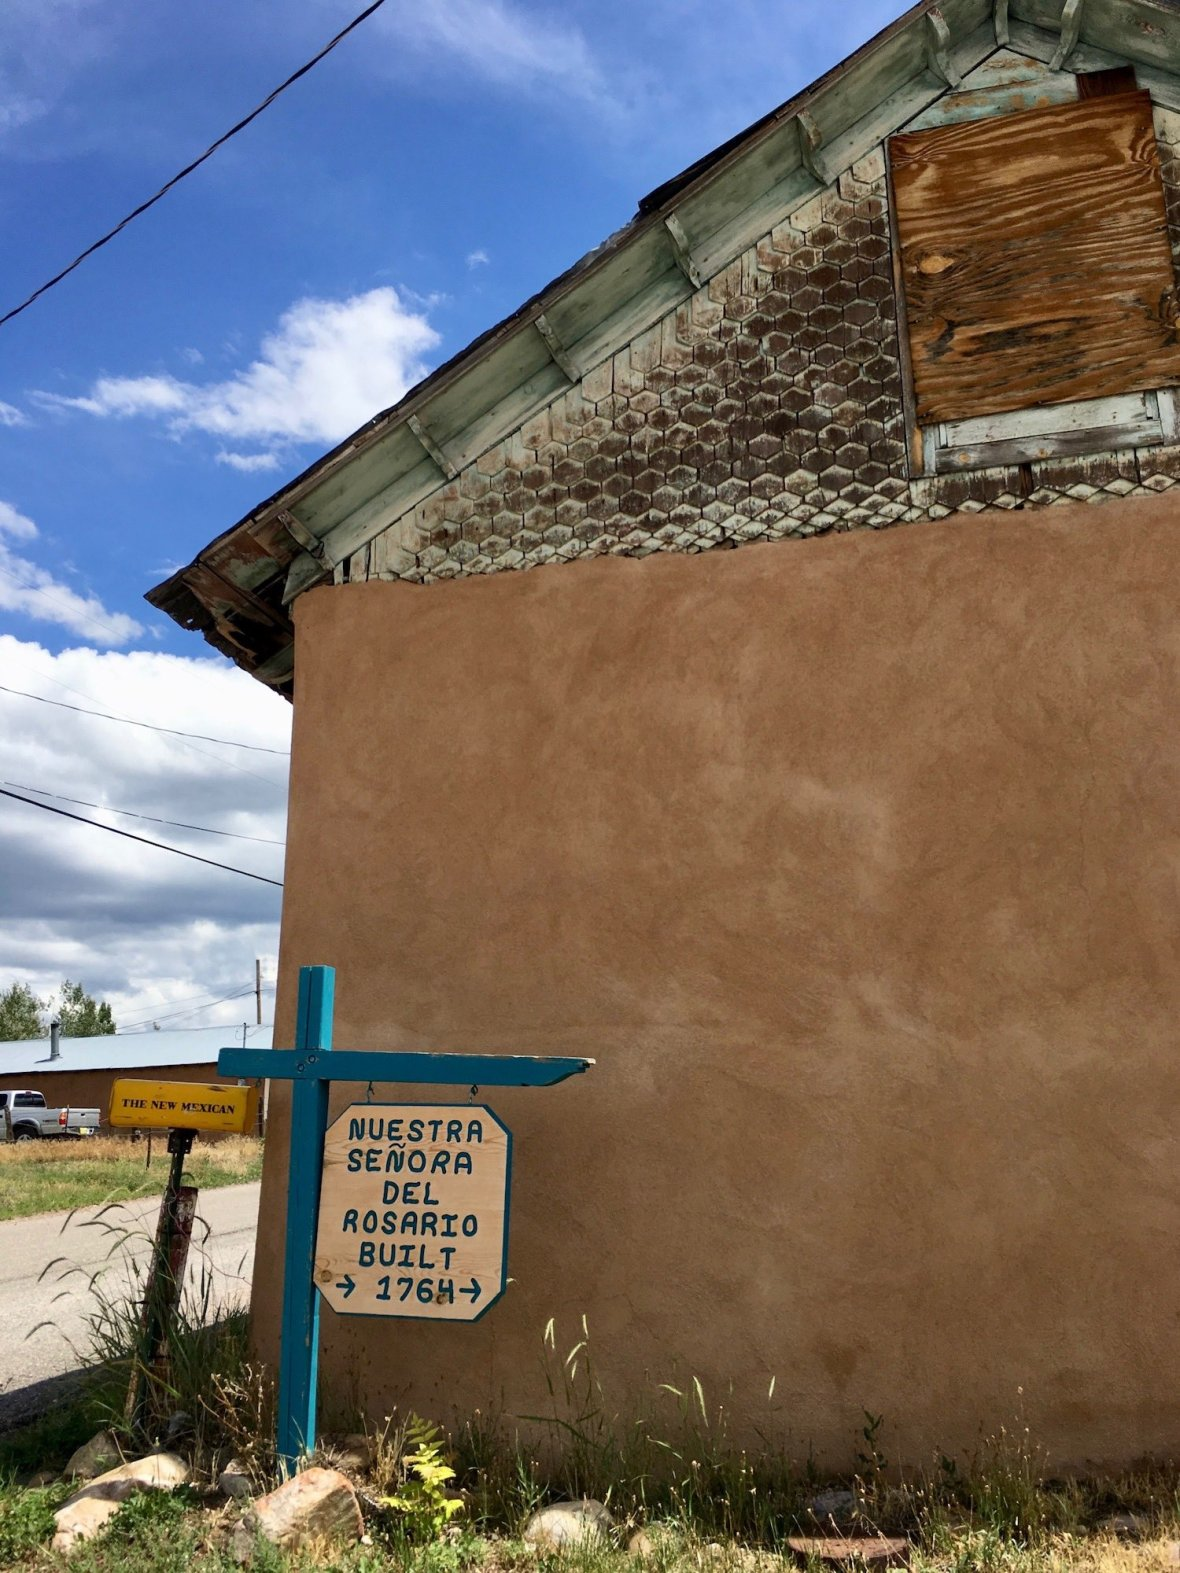 In the town of Truchas along the high road between Taos and Santa Fe